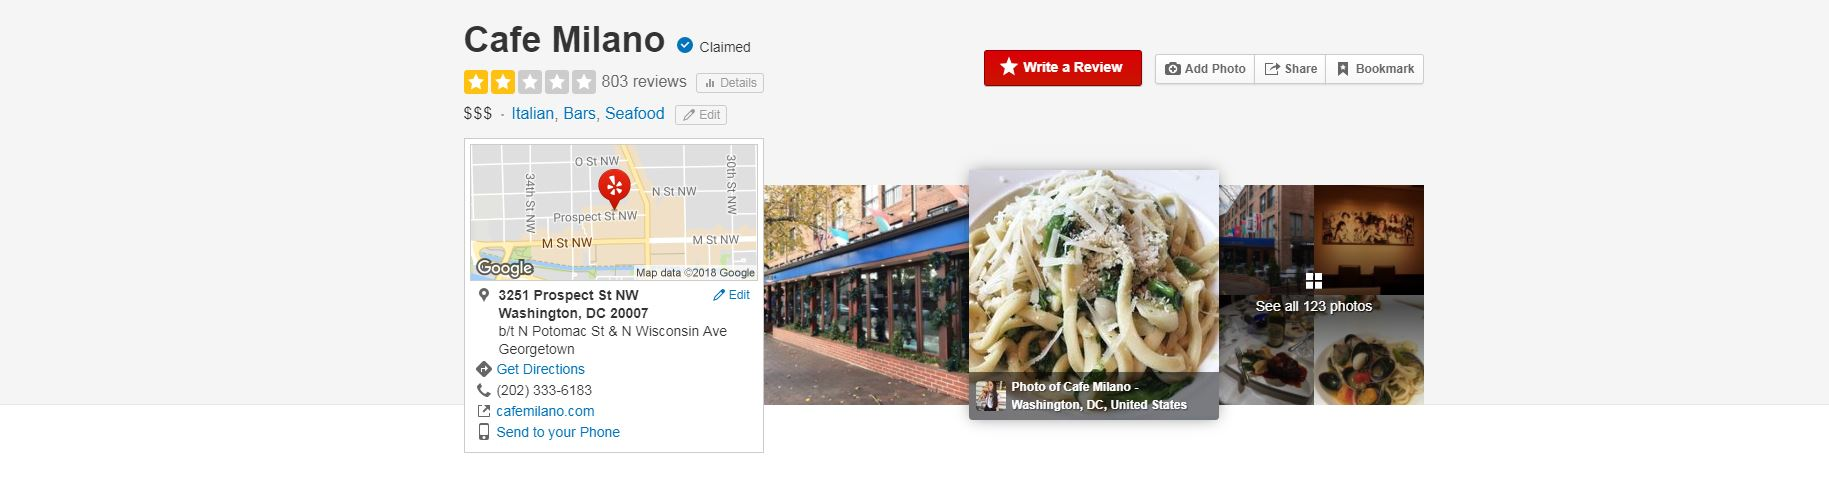 Cafe Milano received close to 300 new one-star Yelp reviews after Chef José Andrés claimed the restaurant denied him entry to a private event.  (Screenshot)<p></p>